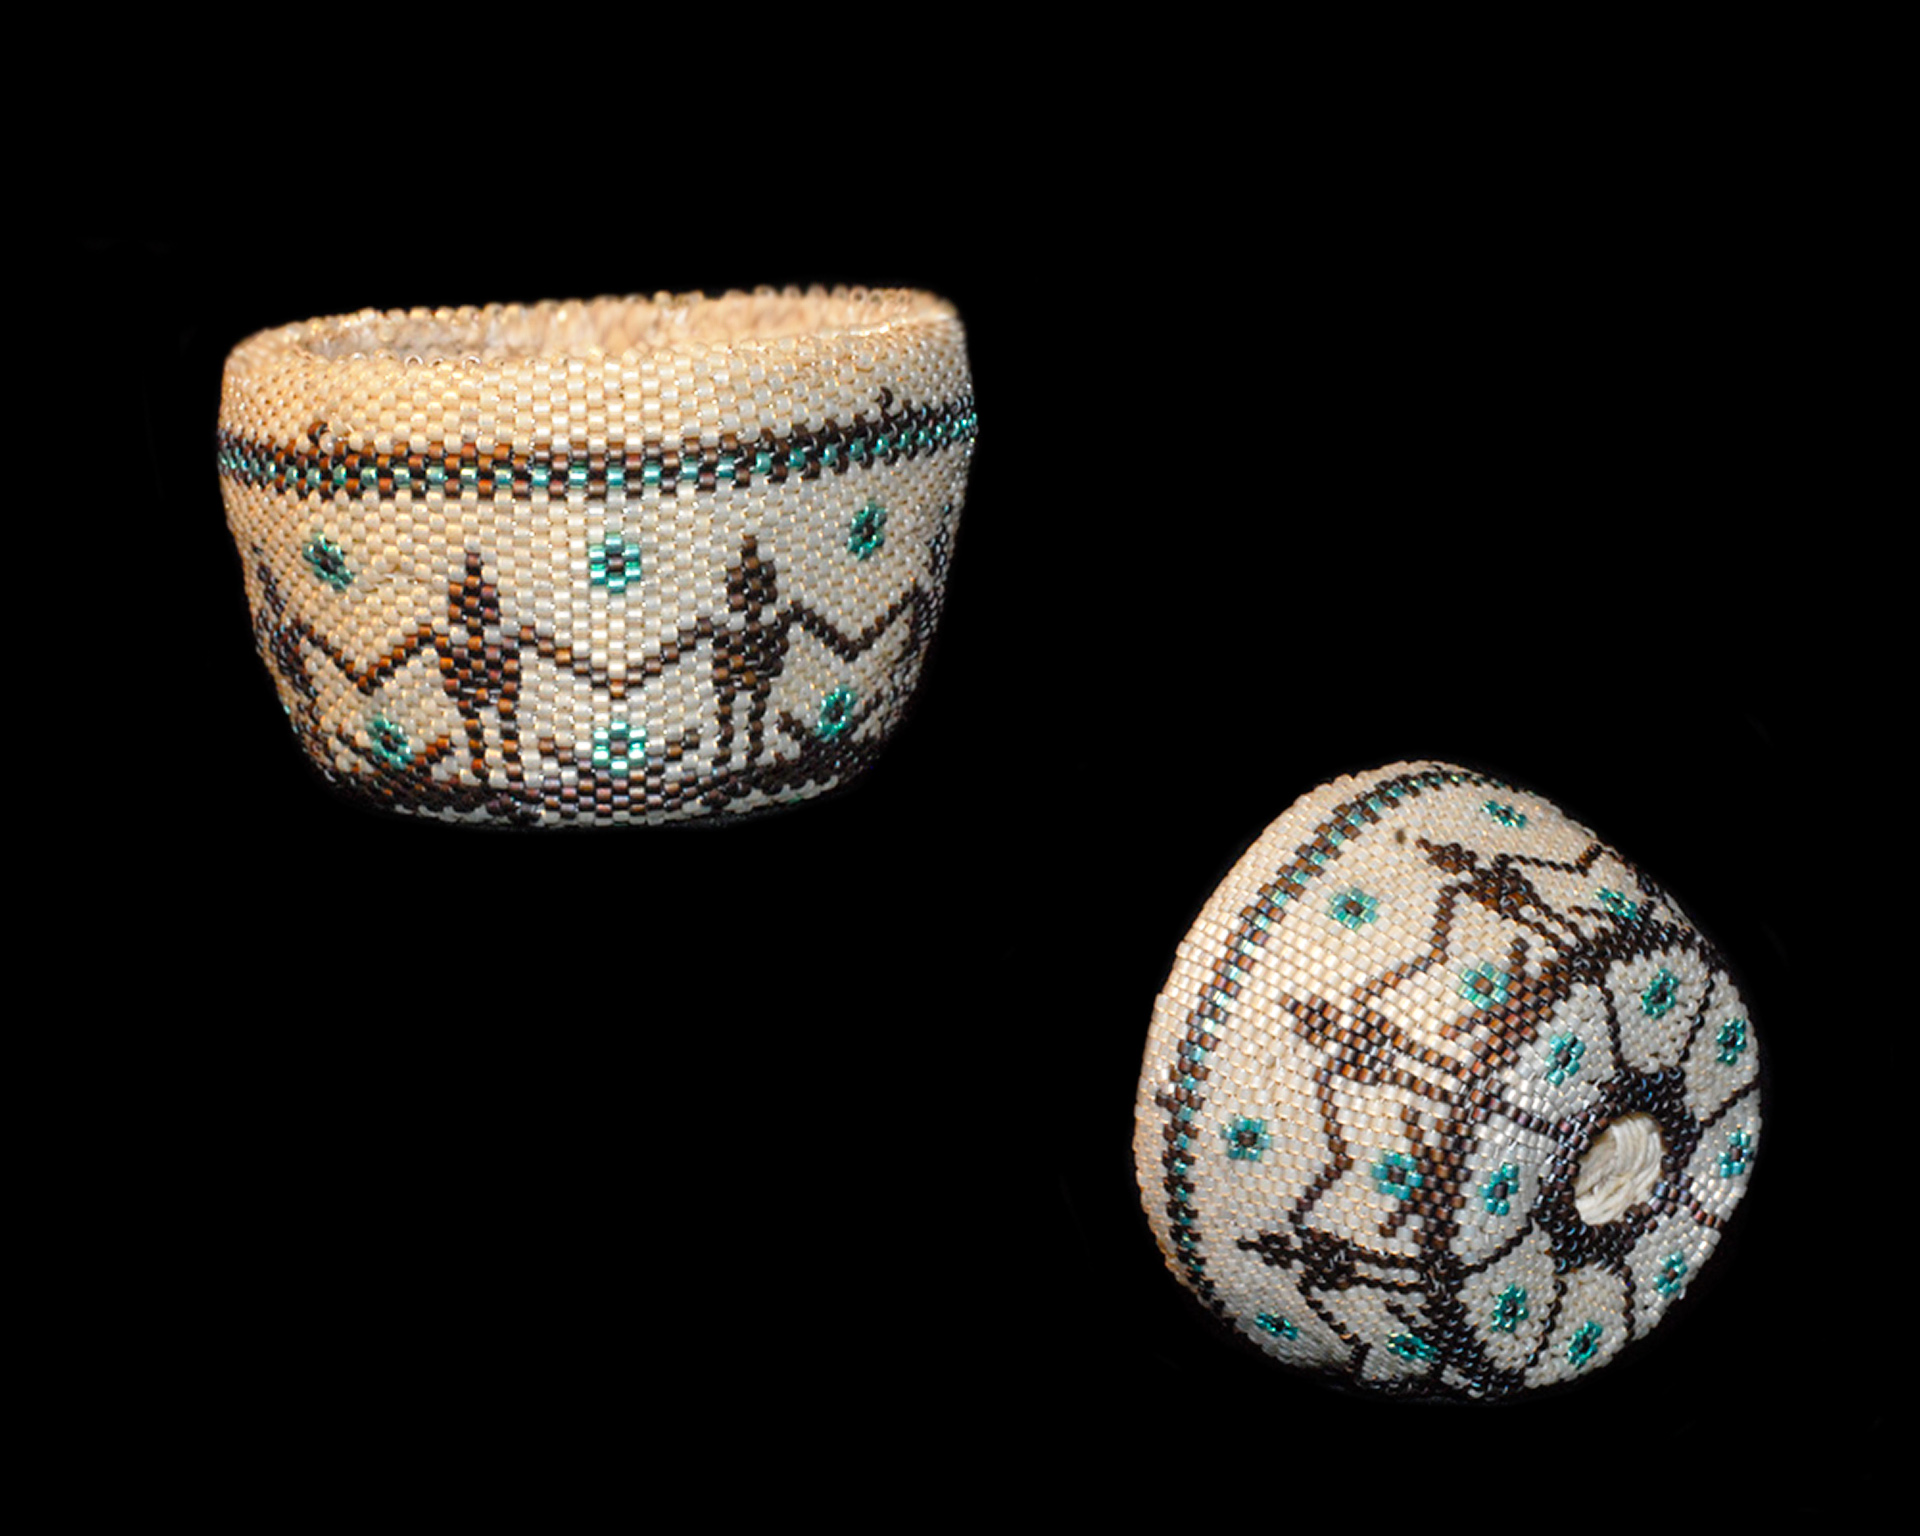 Waxed Linen Basket covered in beads.